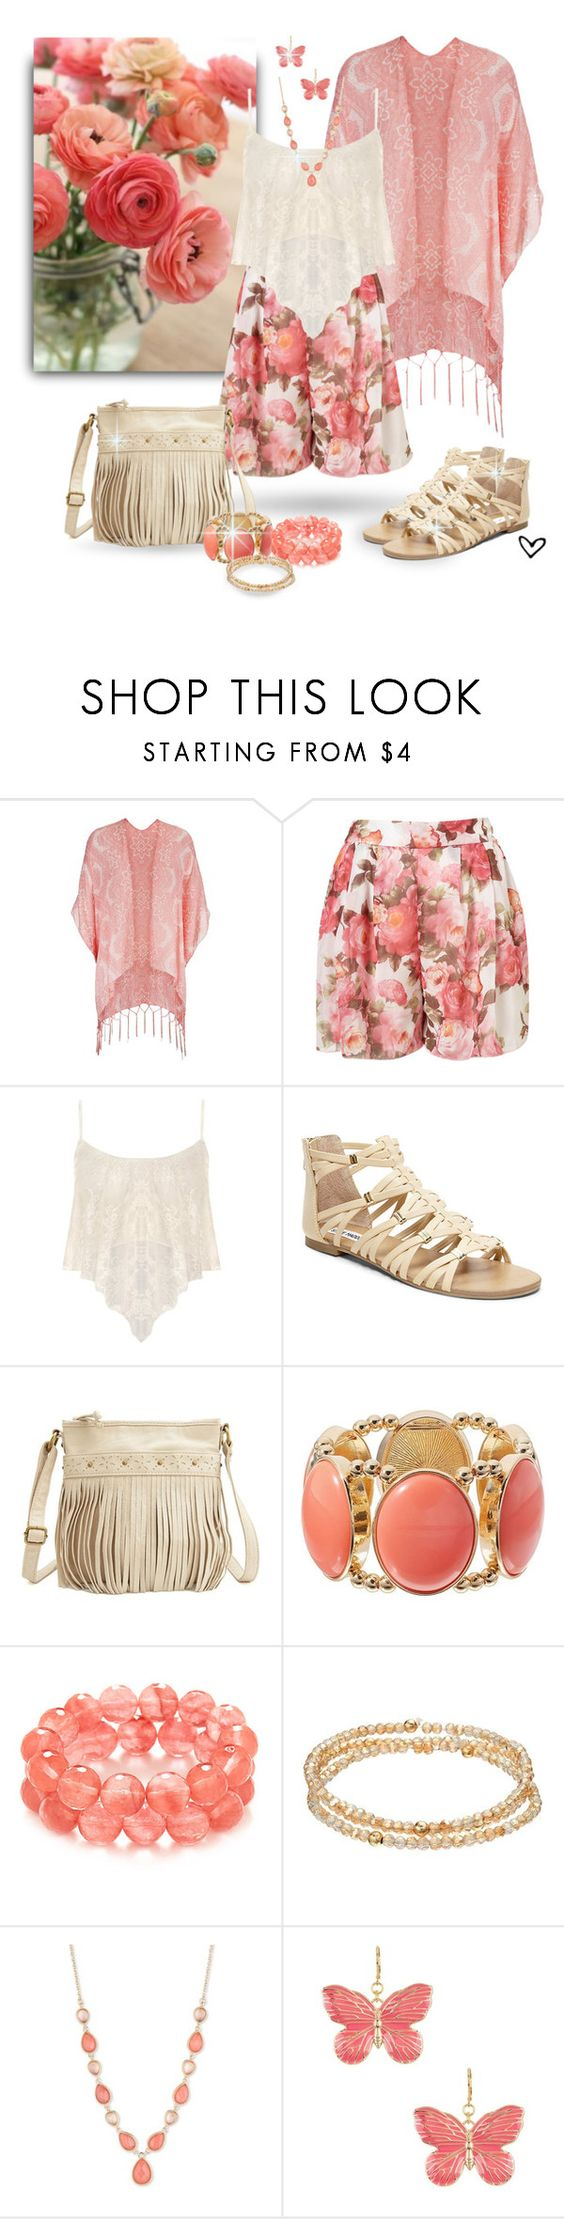 """~Dress Up~ Floral Print Shorts ~"" by justwanderingon ❤ liked on Polyvore featuring maurices, Papermoon, Steve Madden, Charlotte Russe, LC Lauren Conrad, Vintage America, Kenneth Jay Lane and printedshorts"